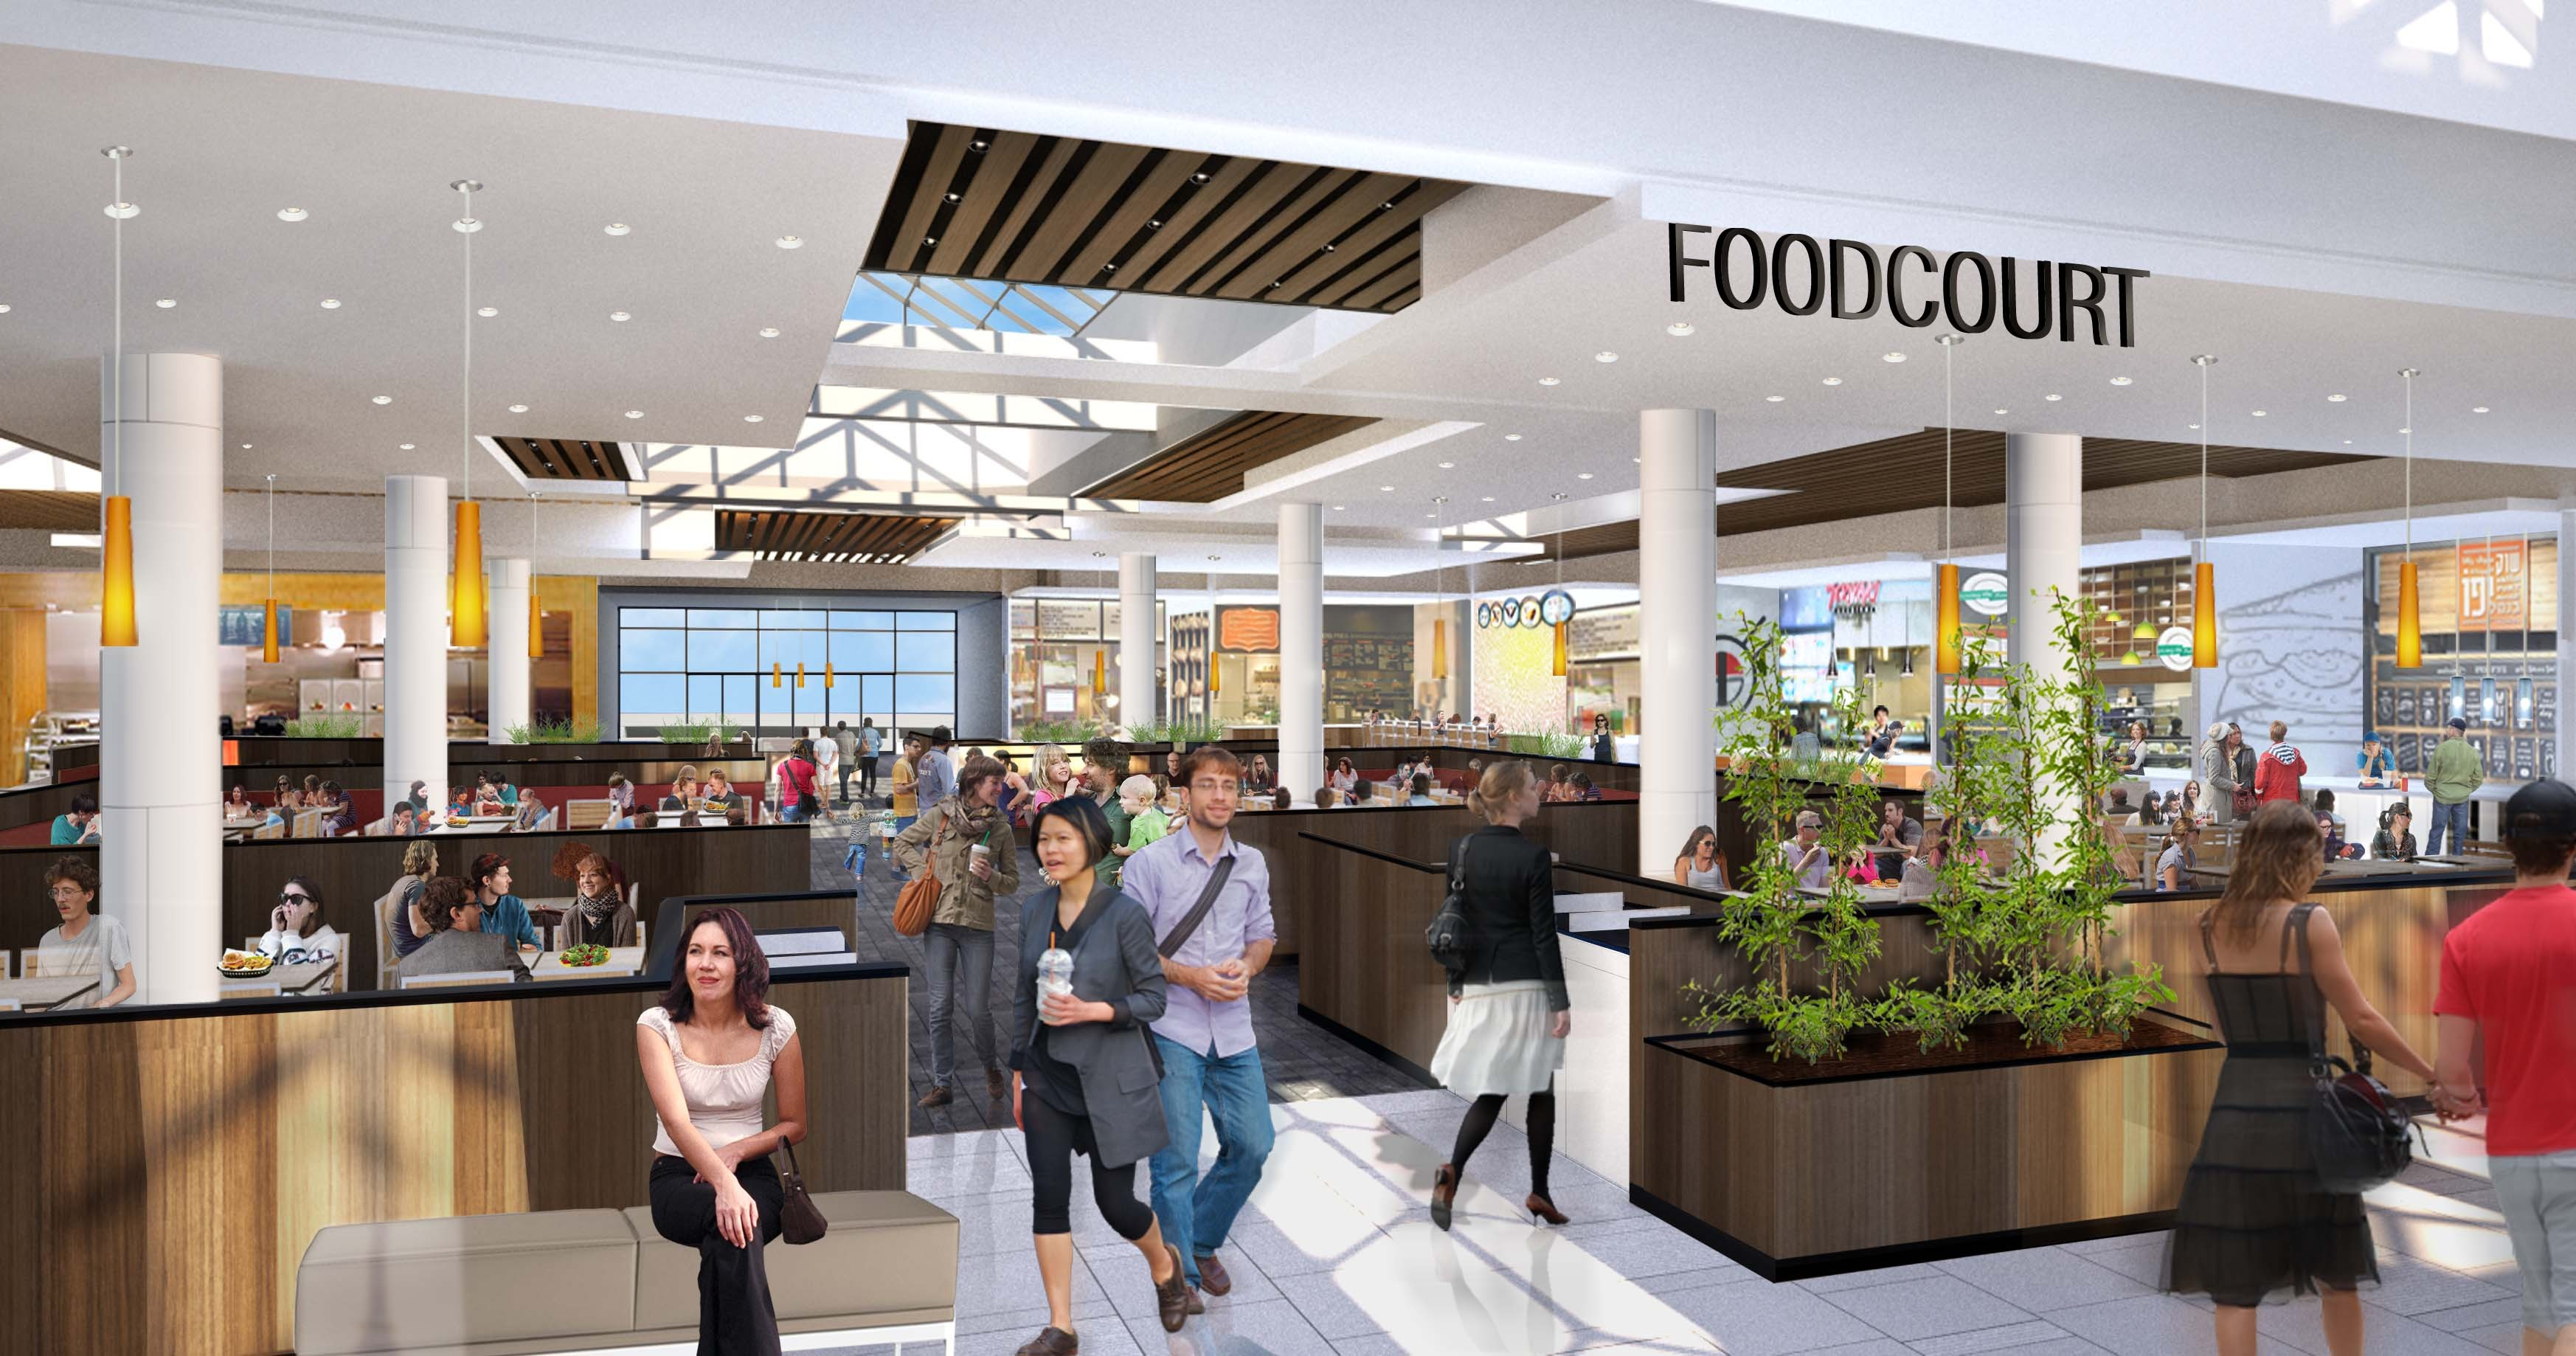 Airport Food Court Signage